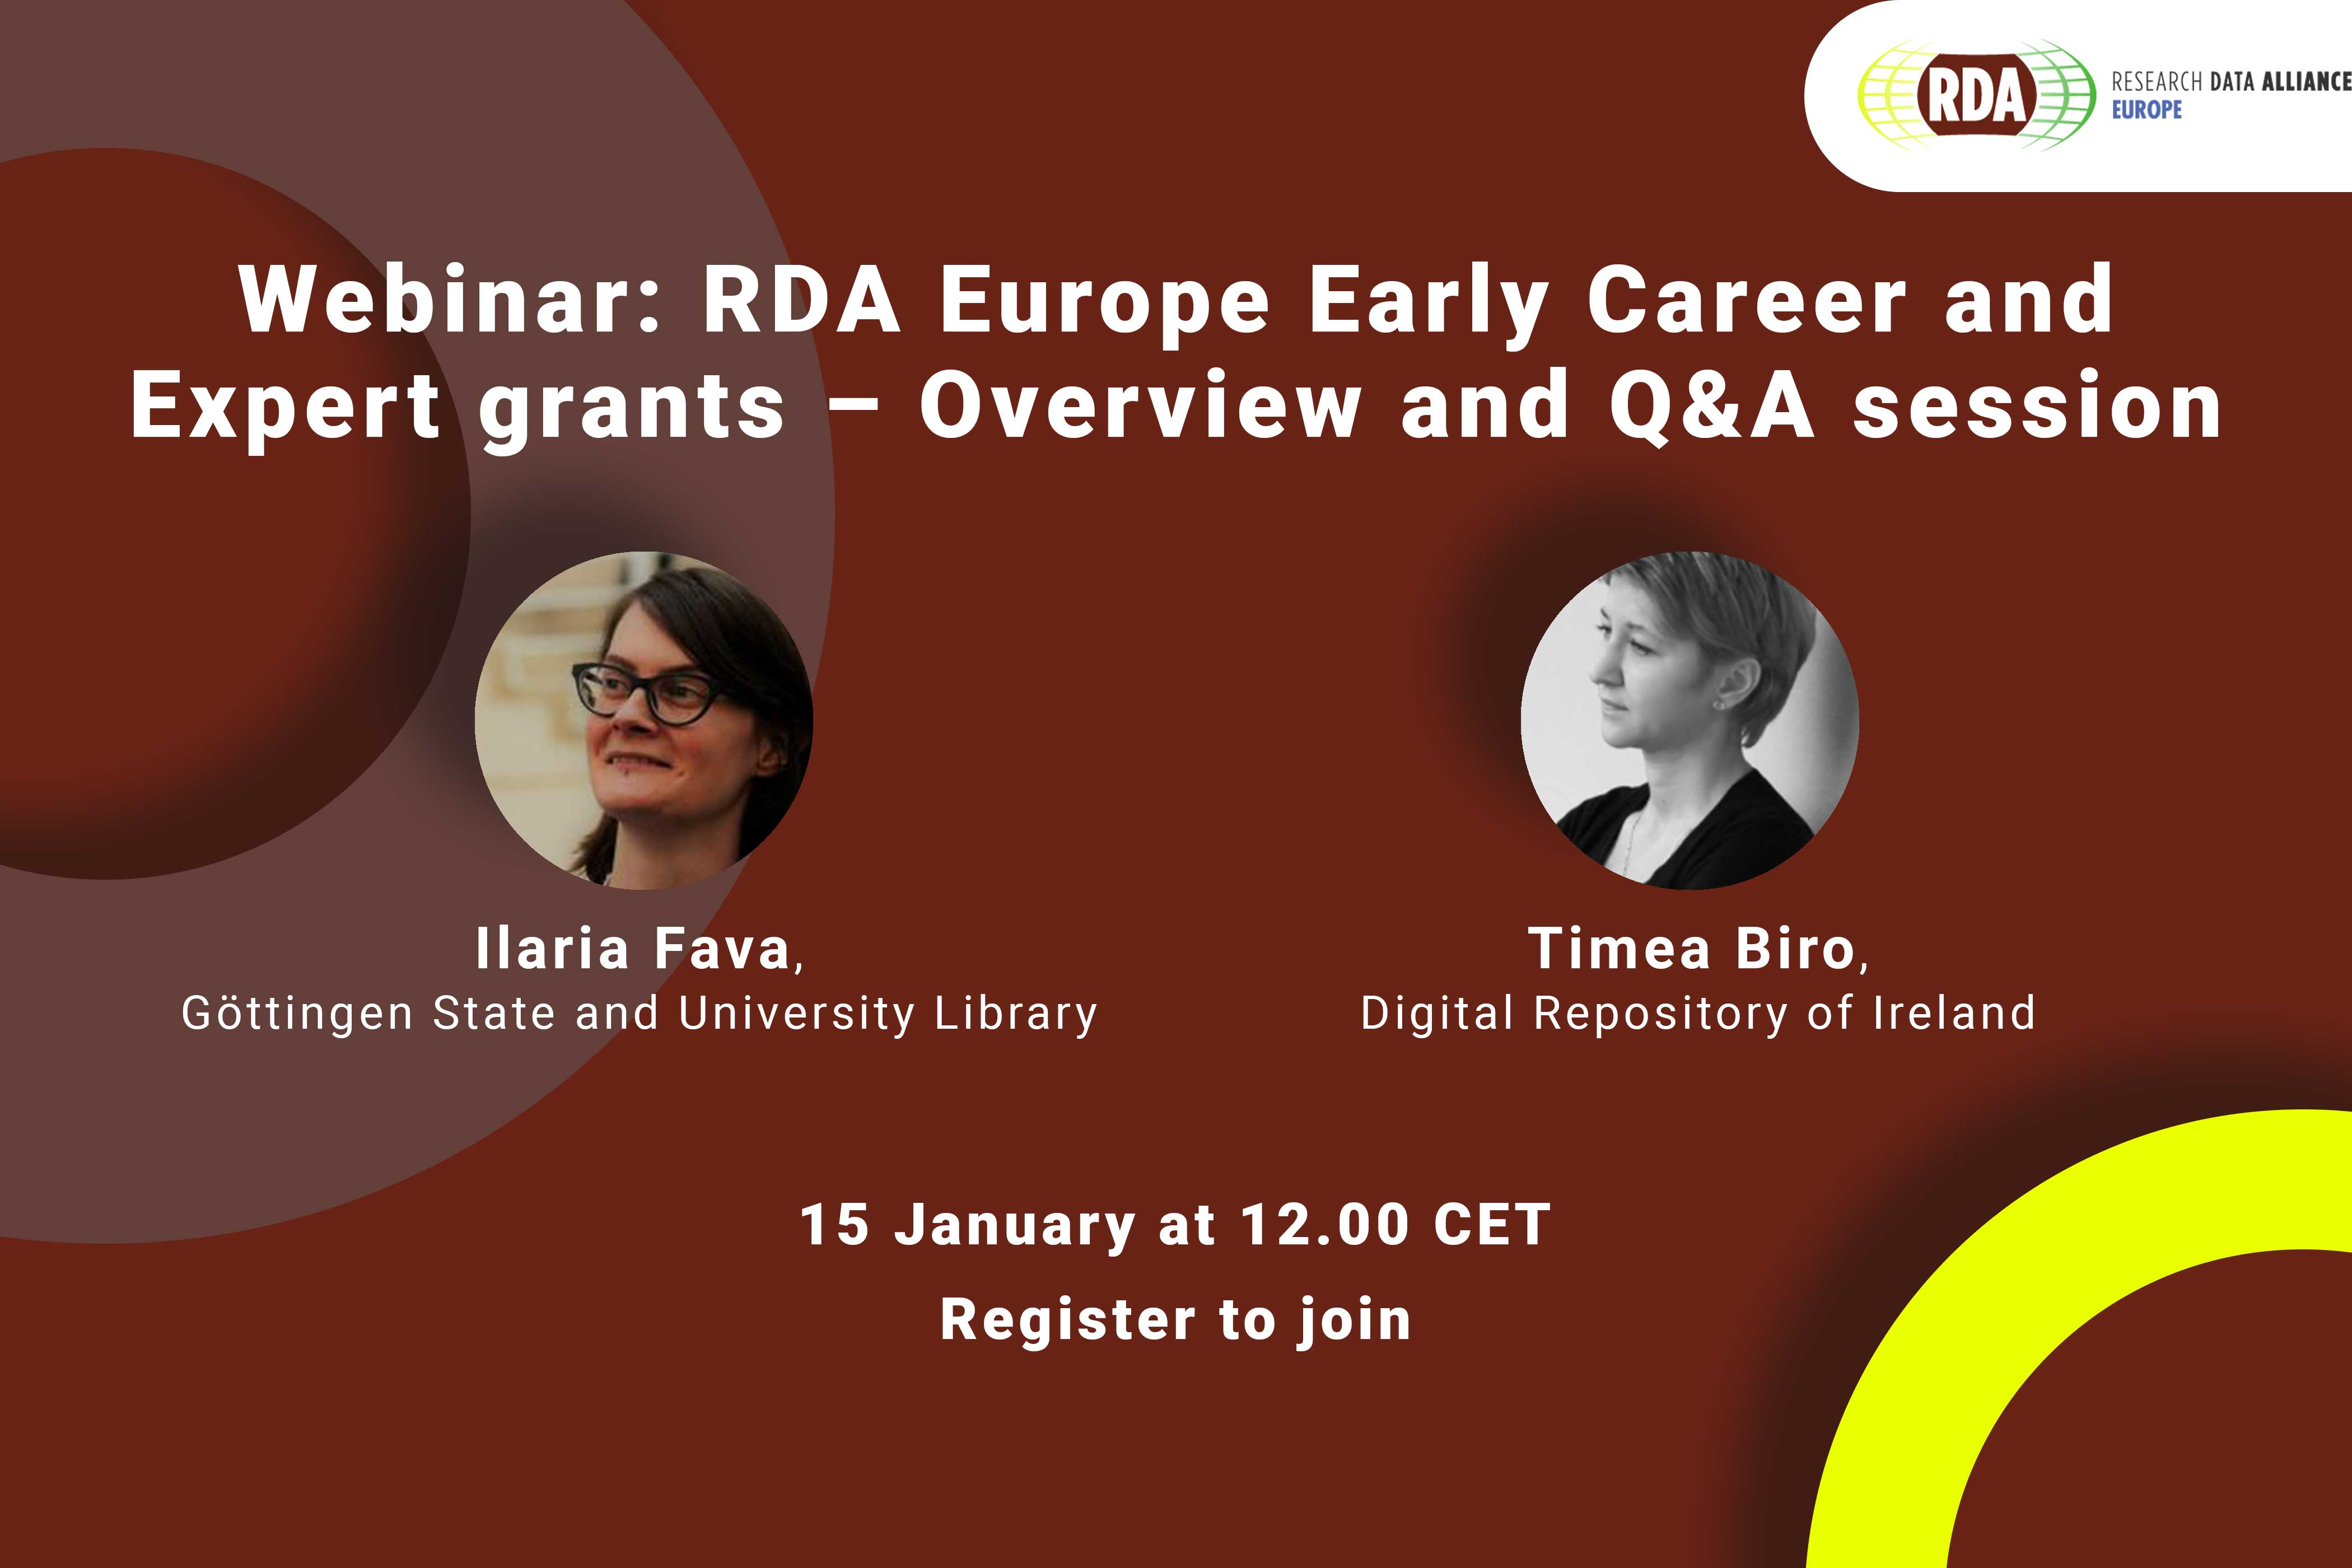 Webinar: RDA Europe Early Career and Expert grants – Overview and Q&A session